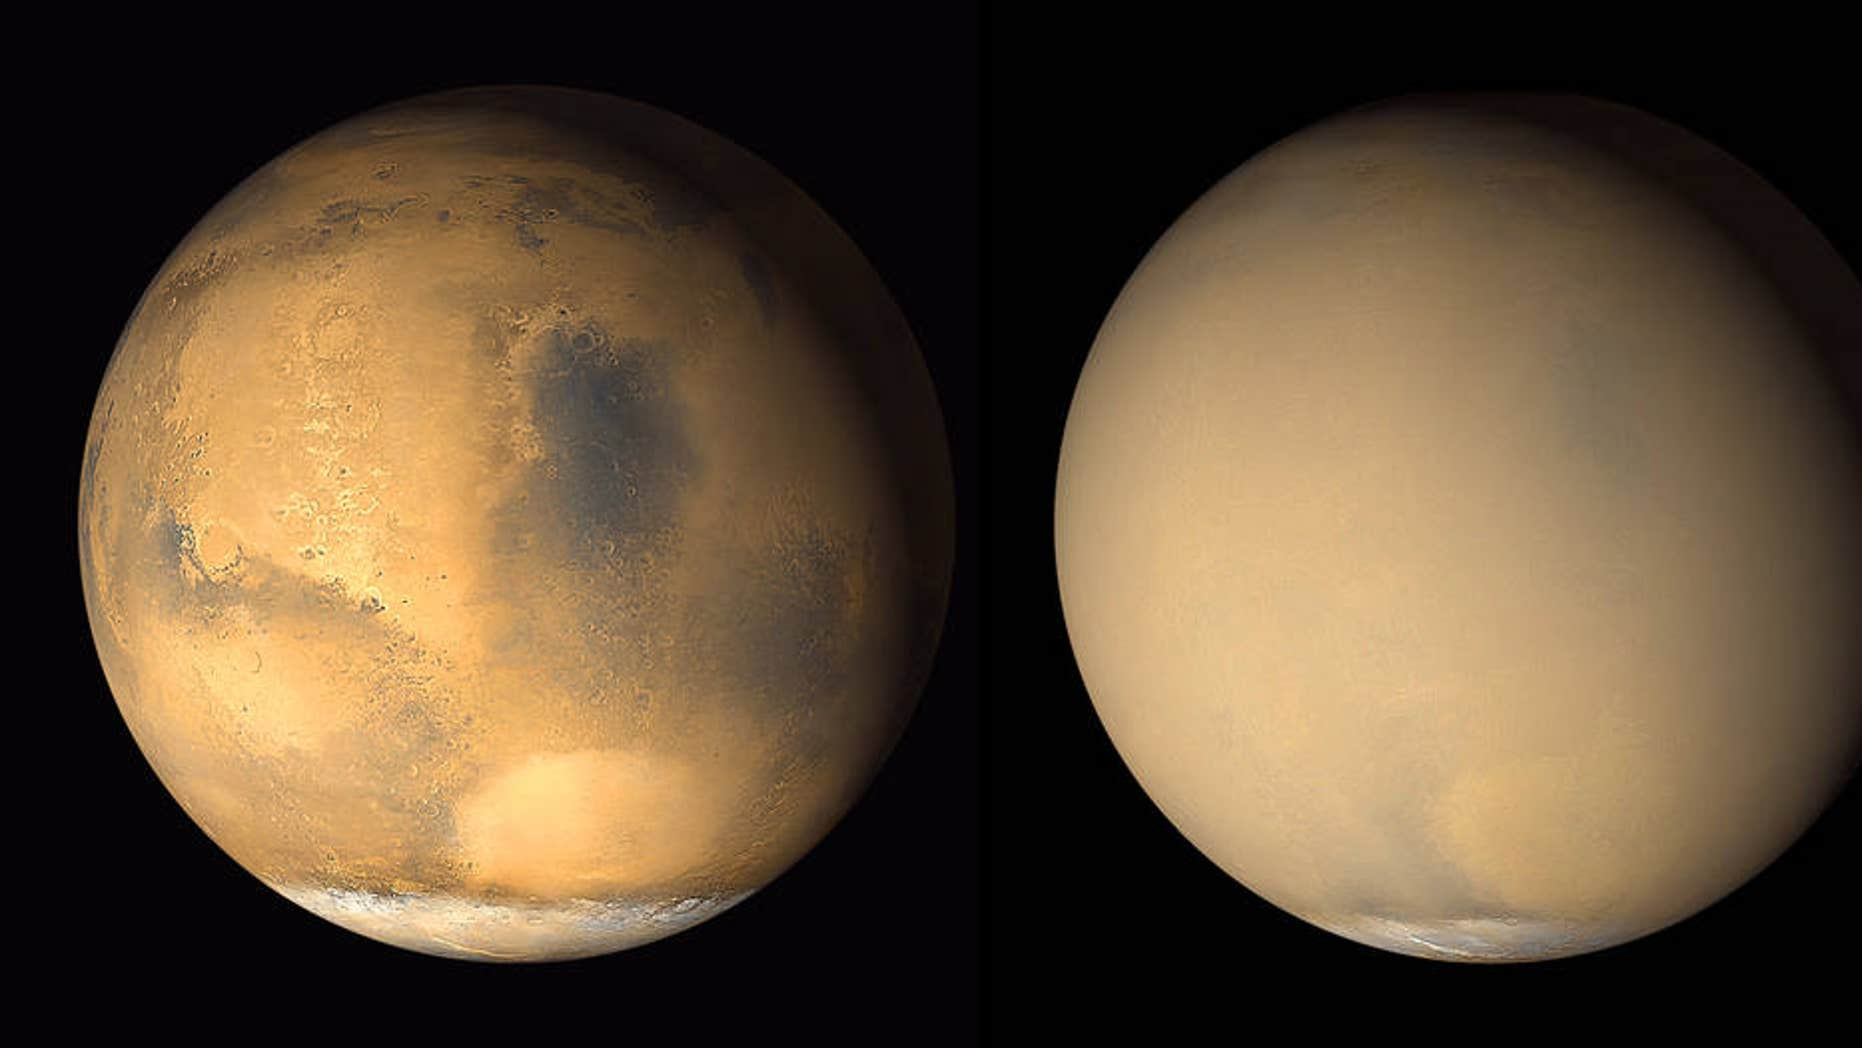 Two images by NASA's Mars Global Surveyor orbiter taken in 2001 show a dramatic change in the Red Planet's appearance when haze raised by dust-storm activity in the south became globally distributed. The photos were taken about a month apart.